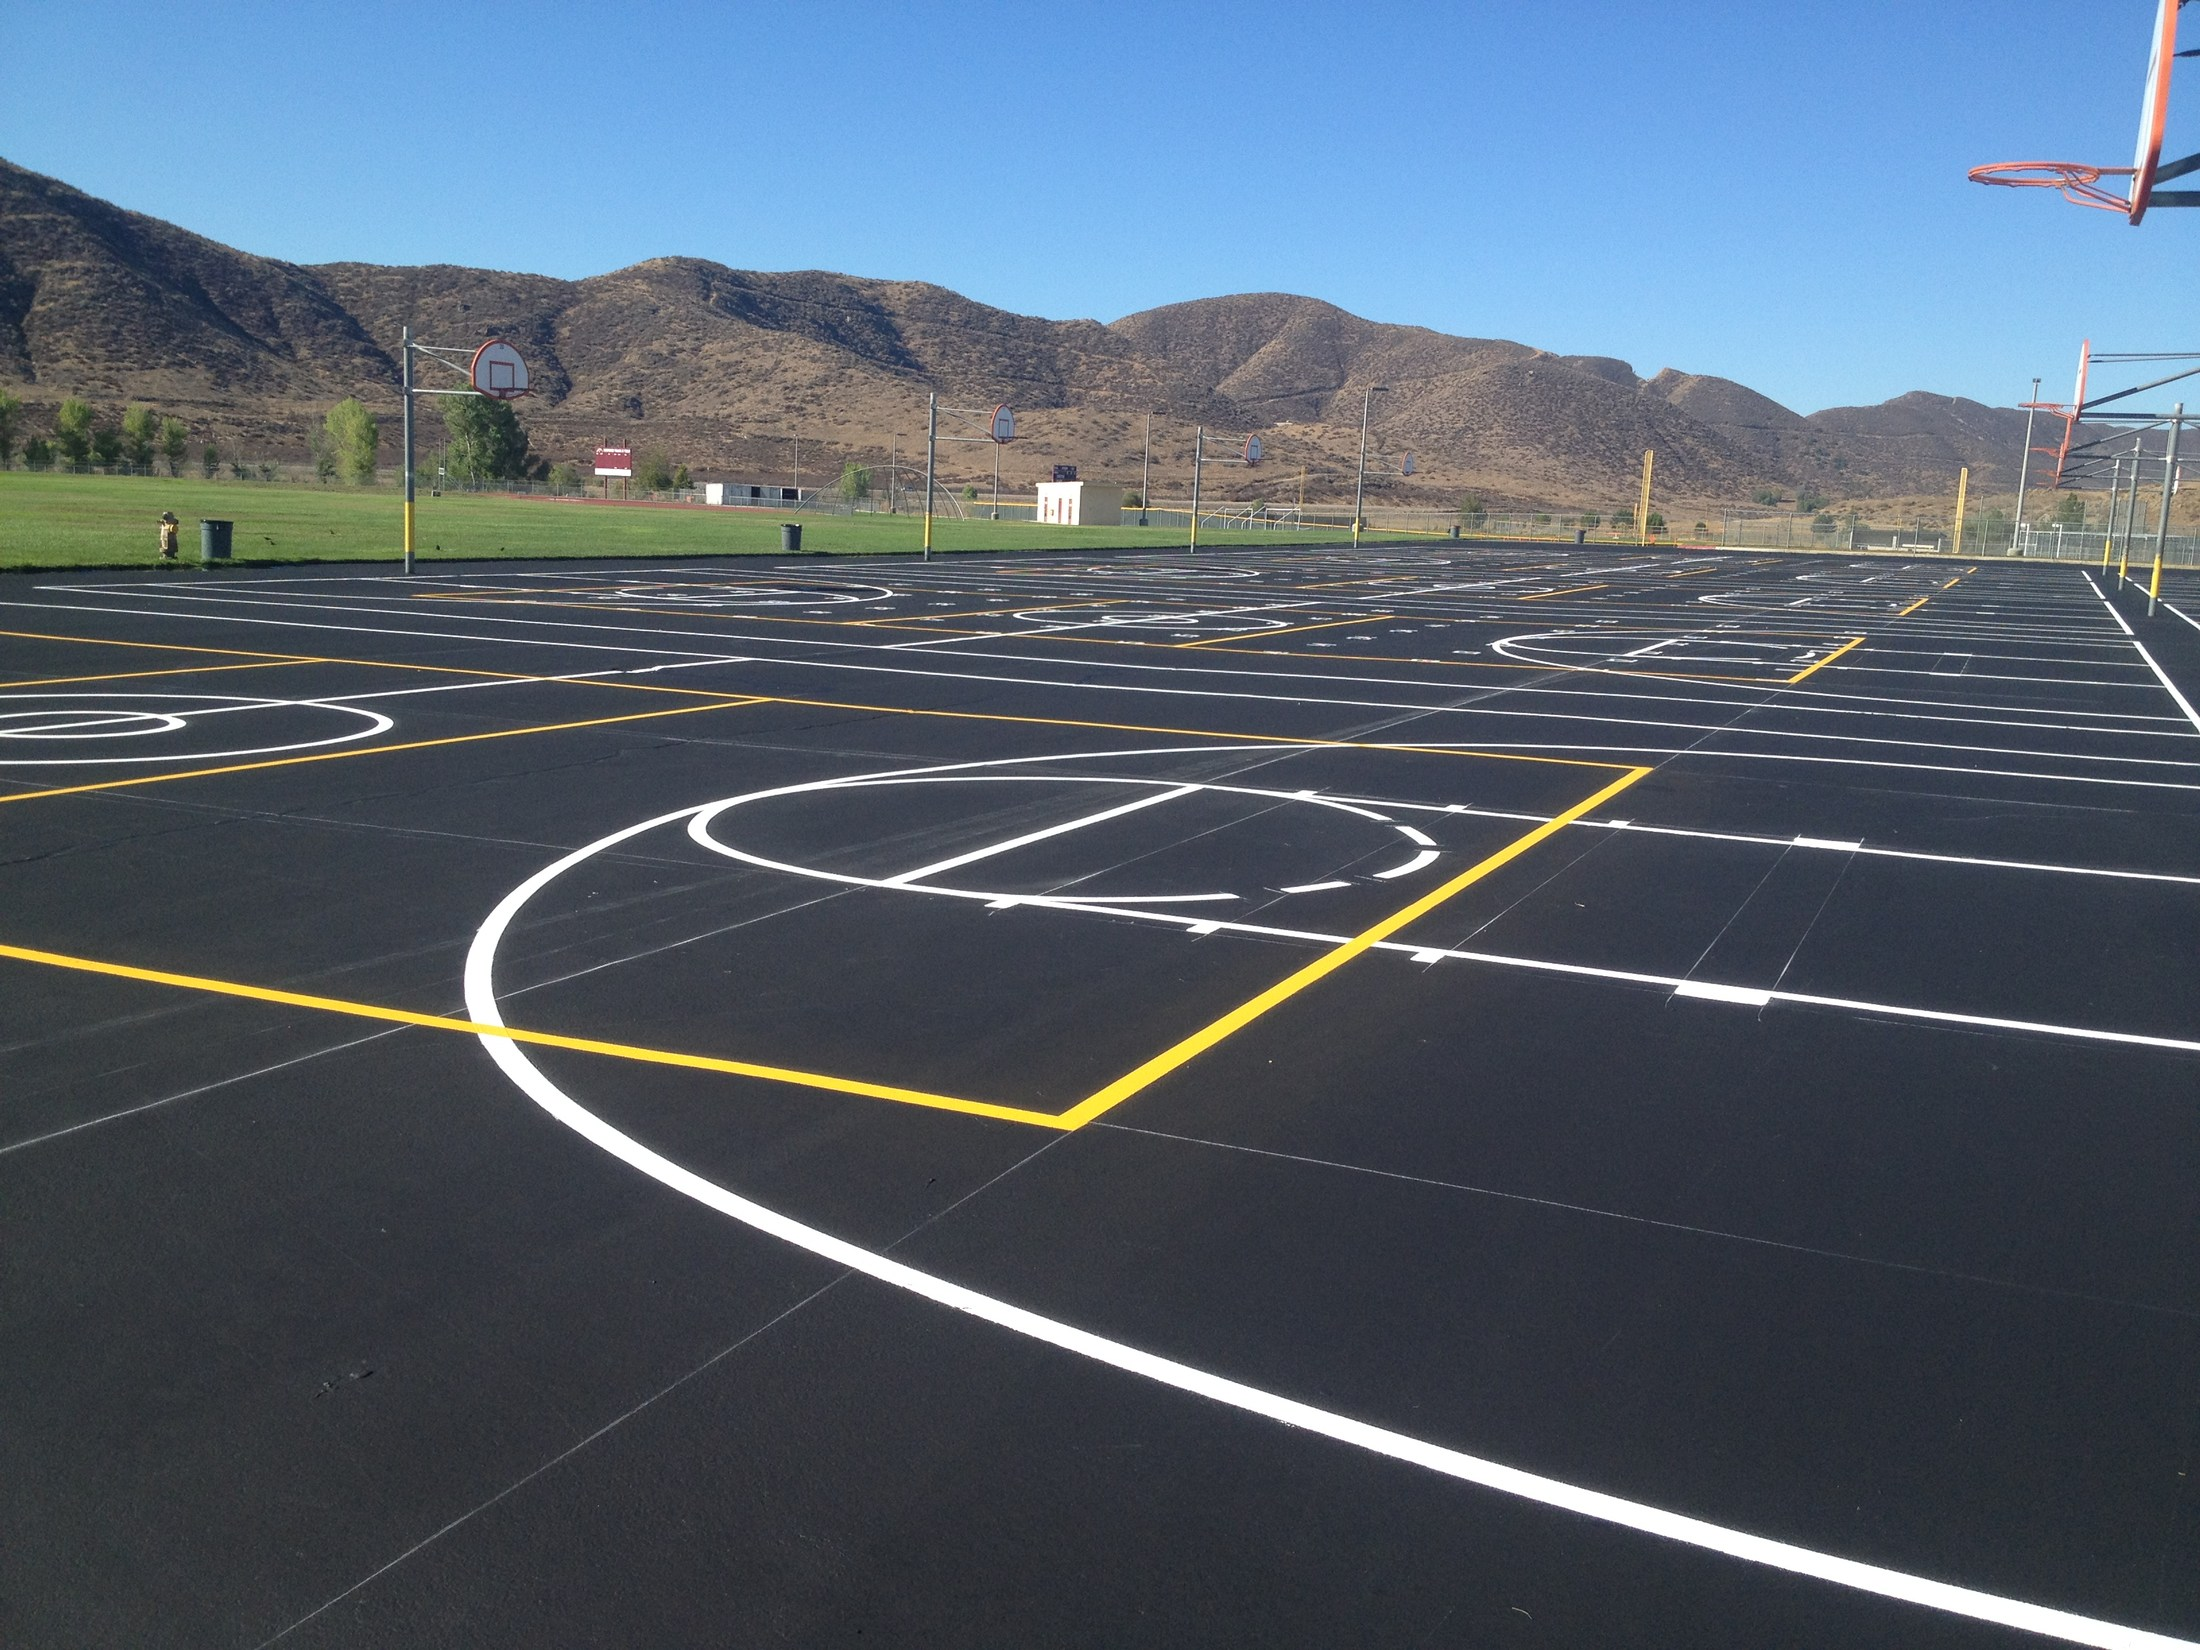 Resurfaced & Repainted blacktop at West Valley